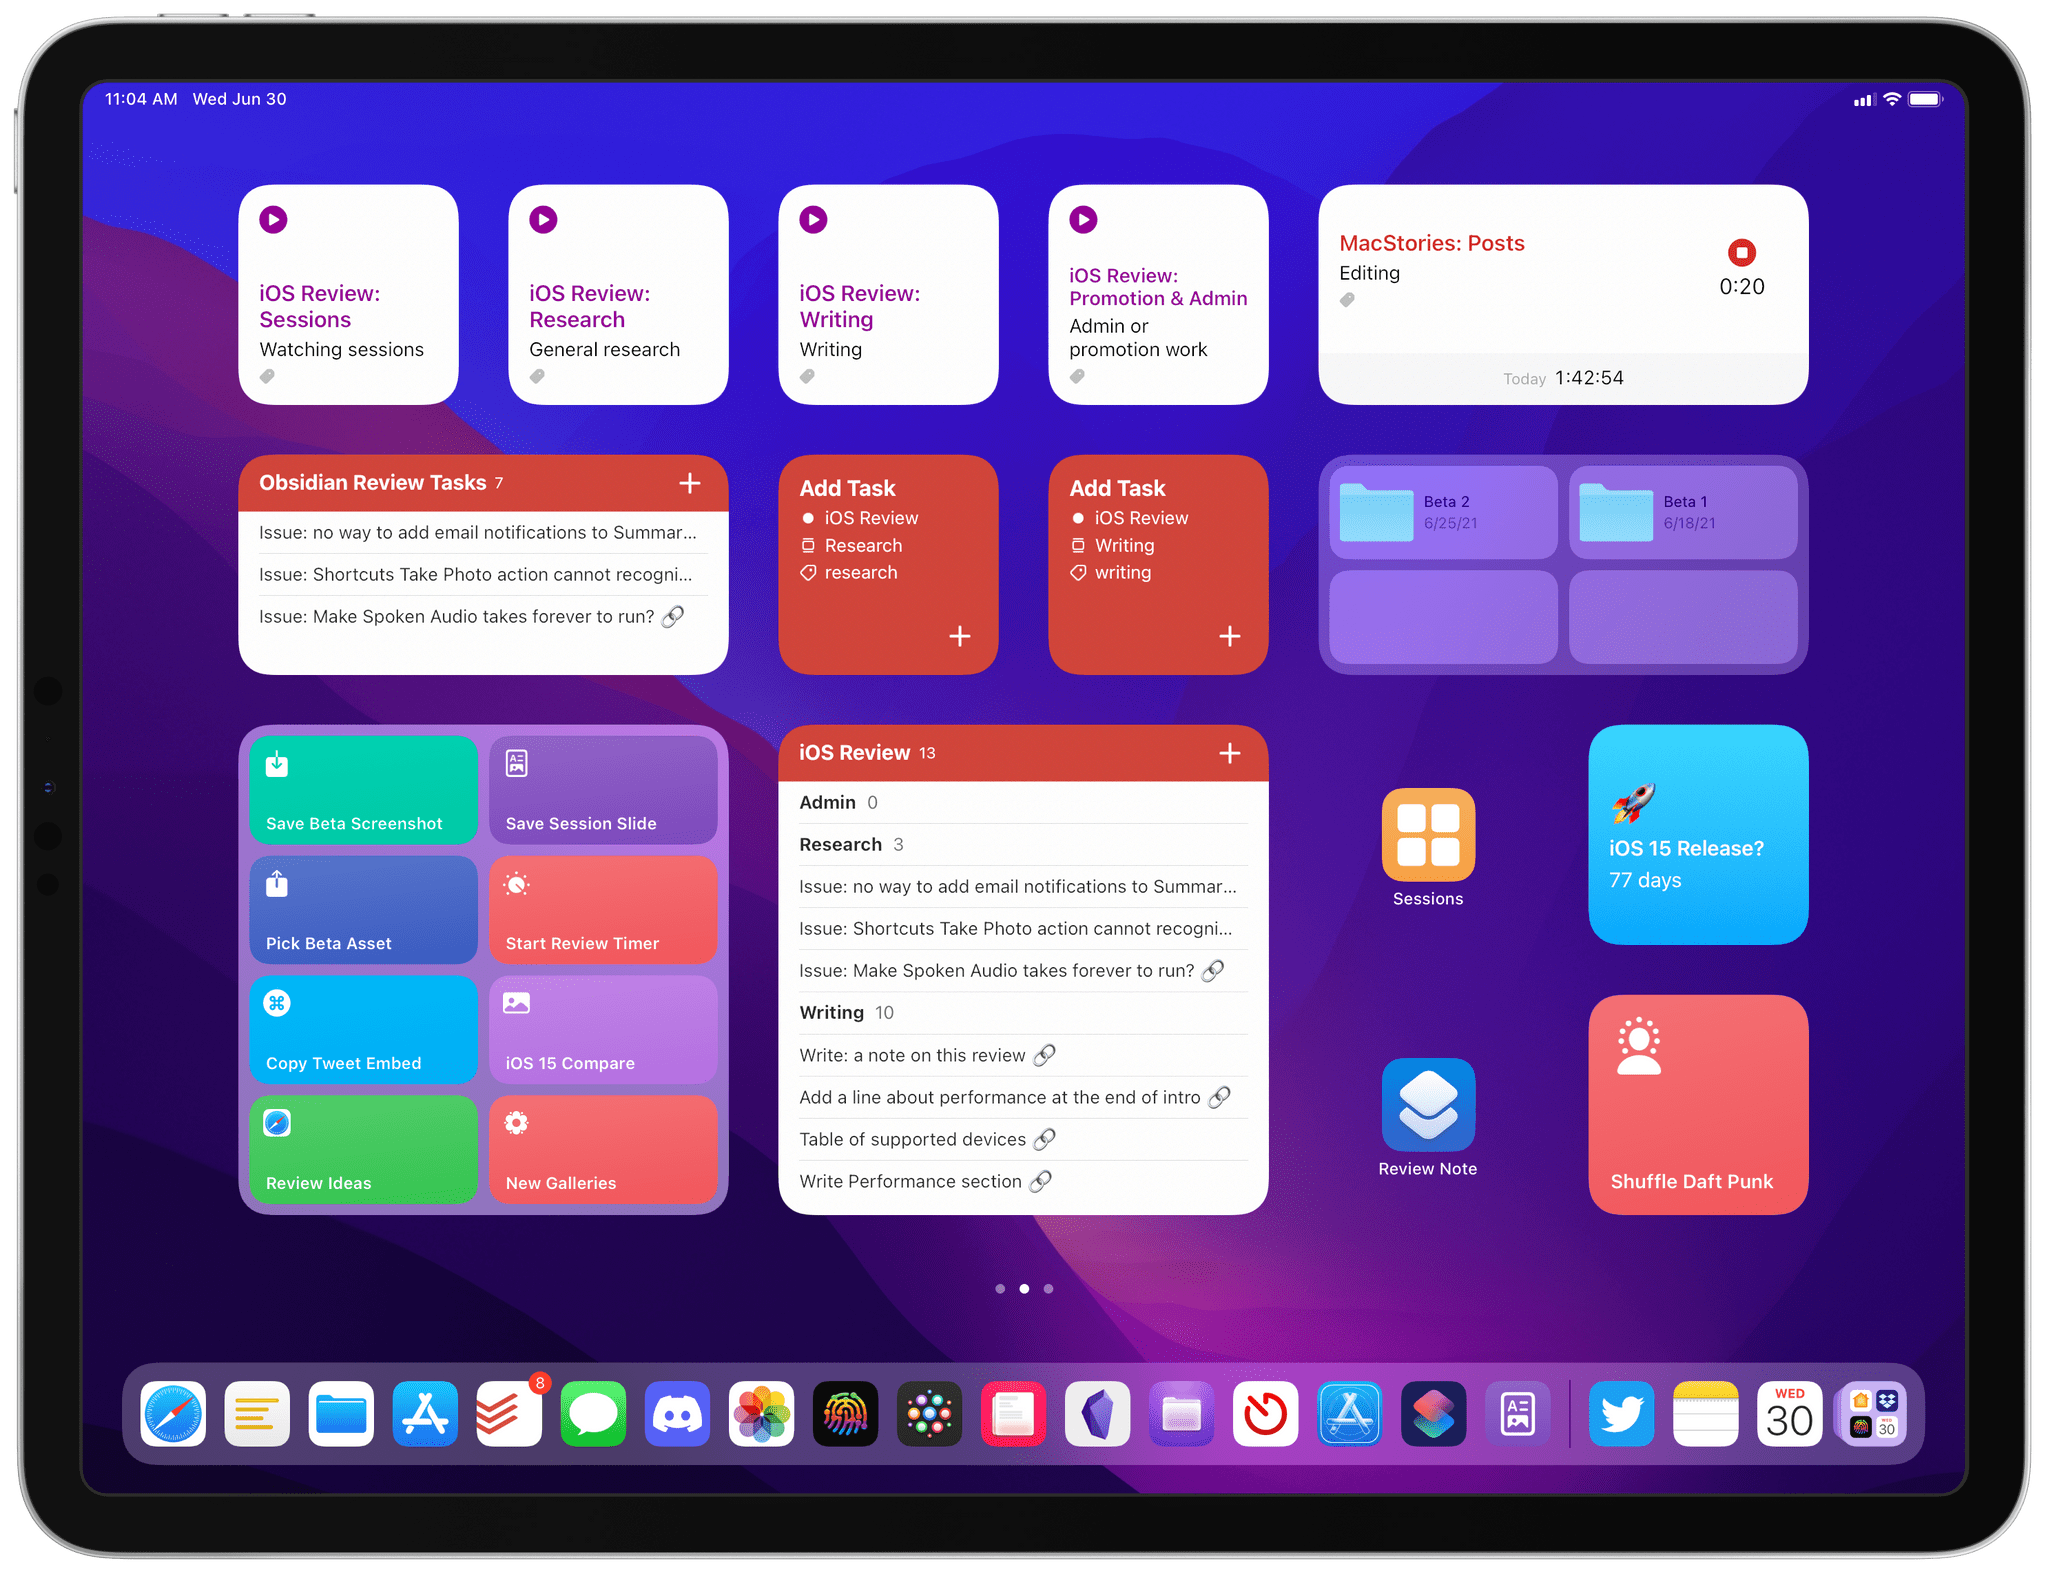 My iOS Review Home Screen for iPadOS 15. You can read more details about this in [Issue 277 of MacStories Weekly](https://club.macstories.net/newsletter-archive/).